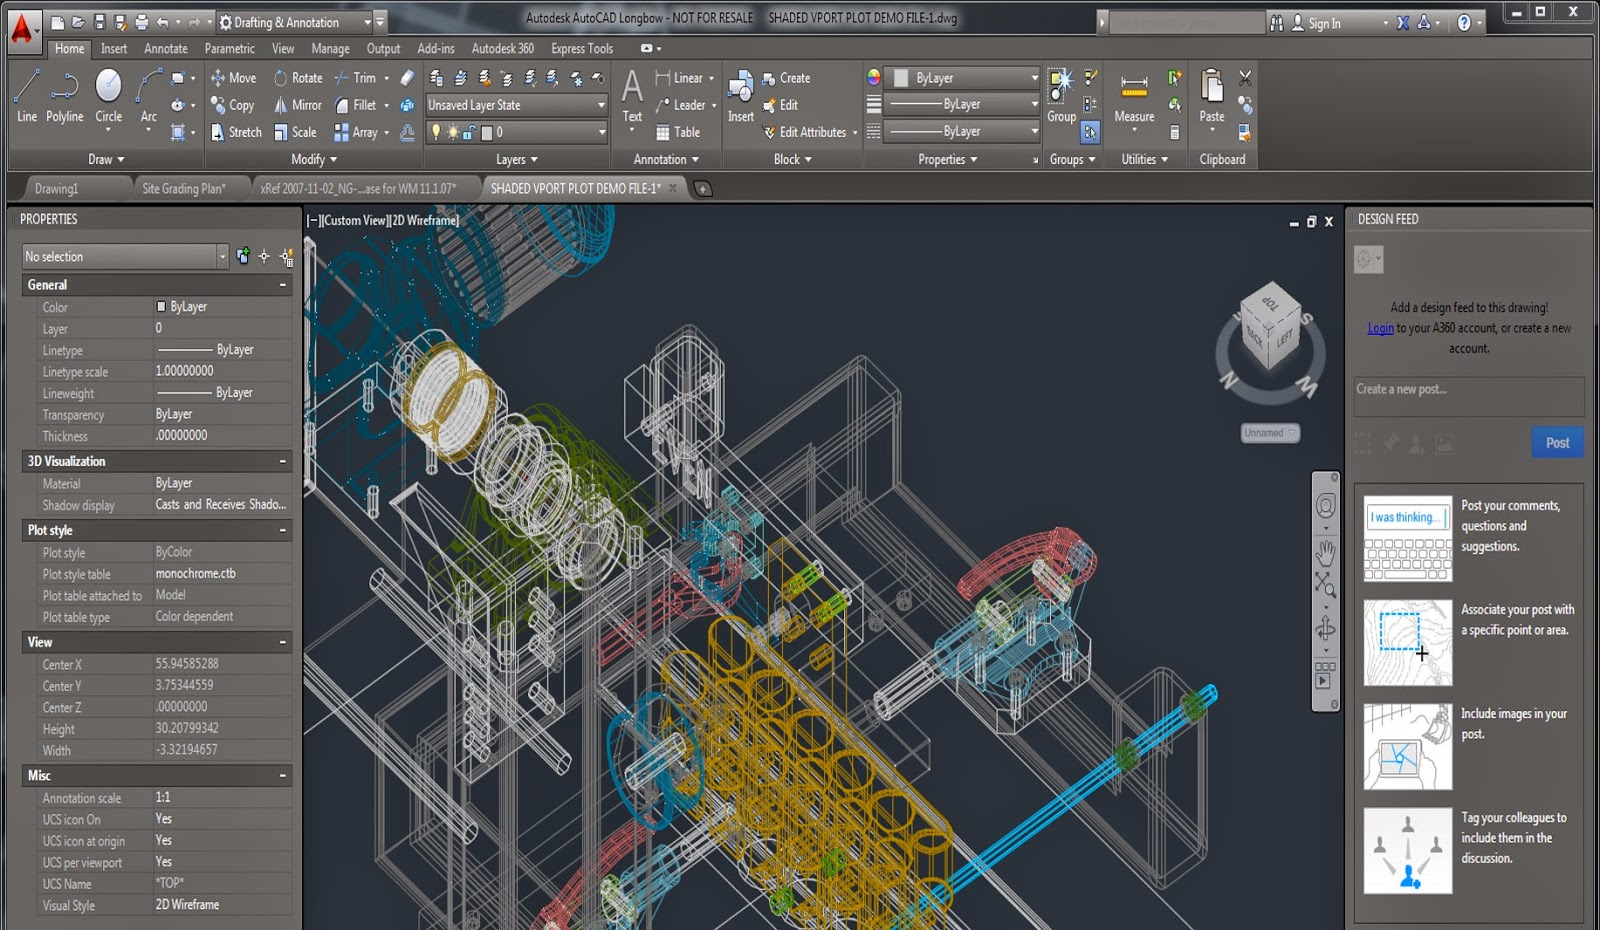 AutoCAD 2015 - Main User Interface